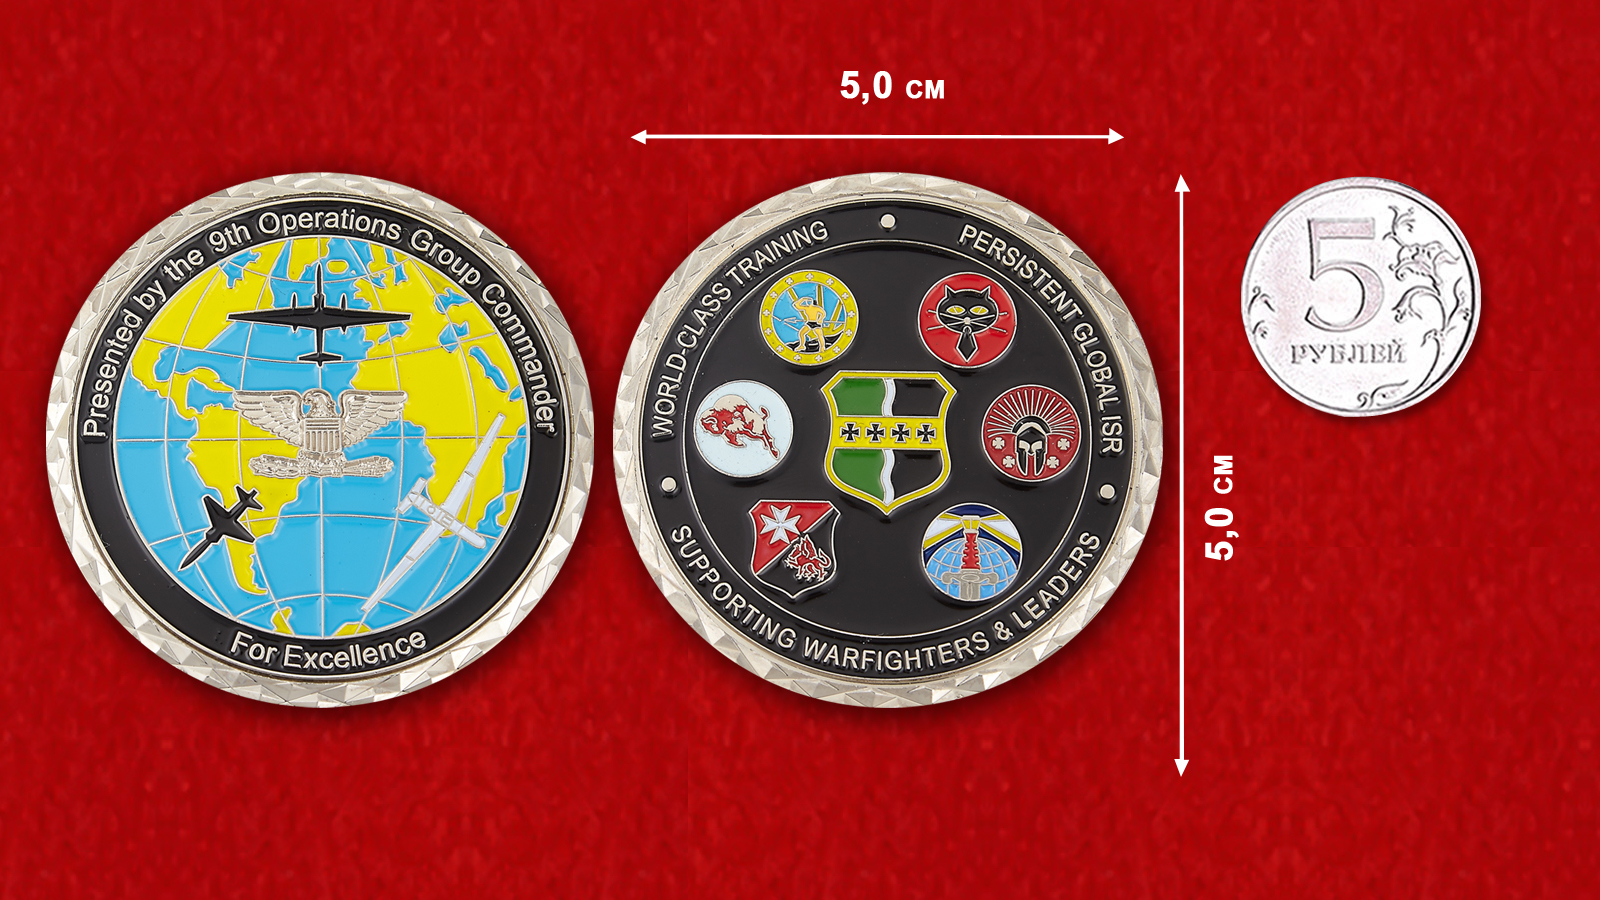 For Exellence Presented by the 9th Operations Group Commander Challenge Coin - comparative size